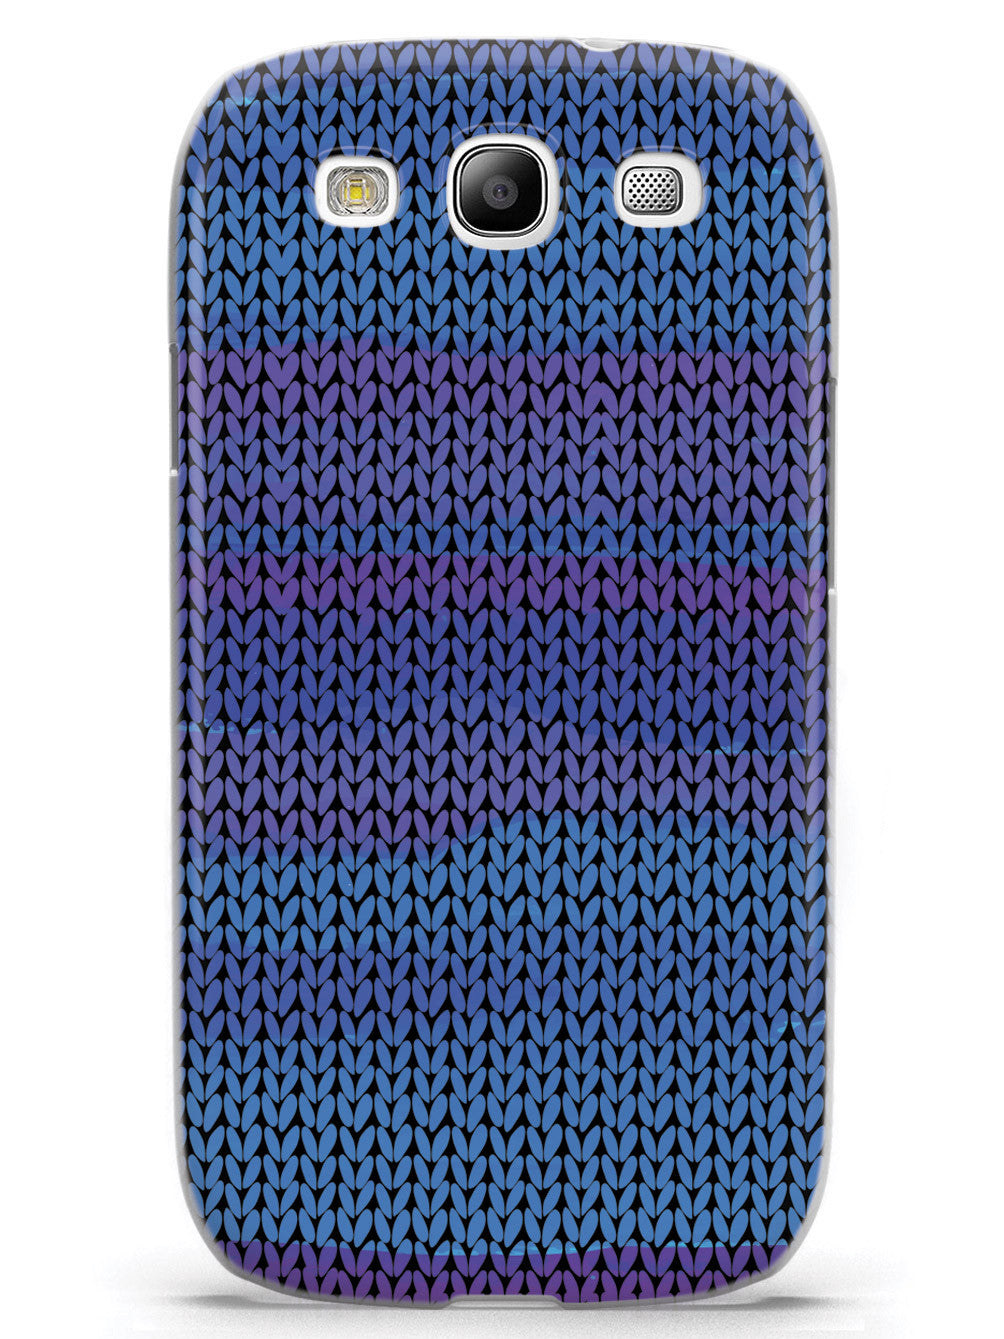 Shades of Blue Sweater Texture - White Case